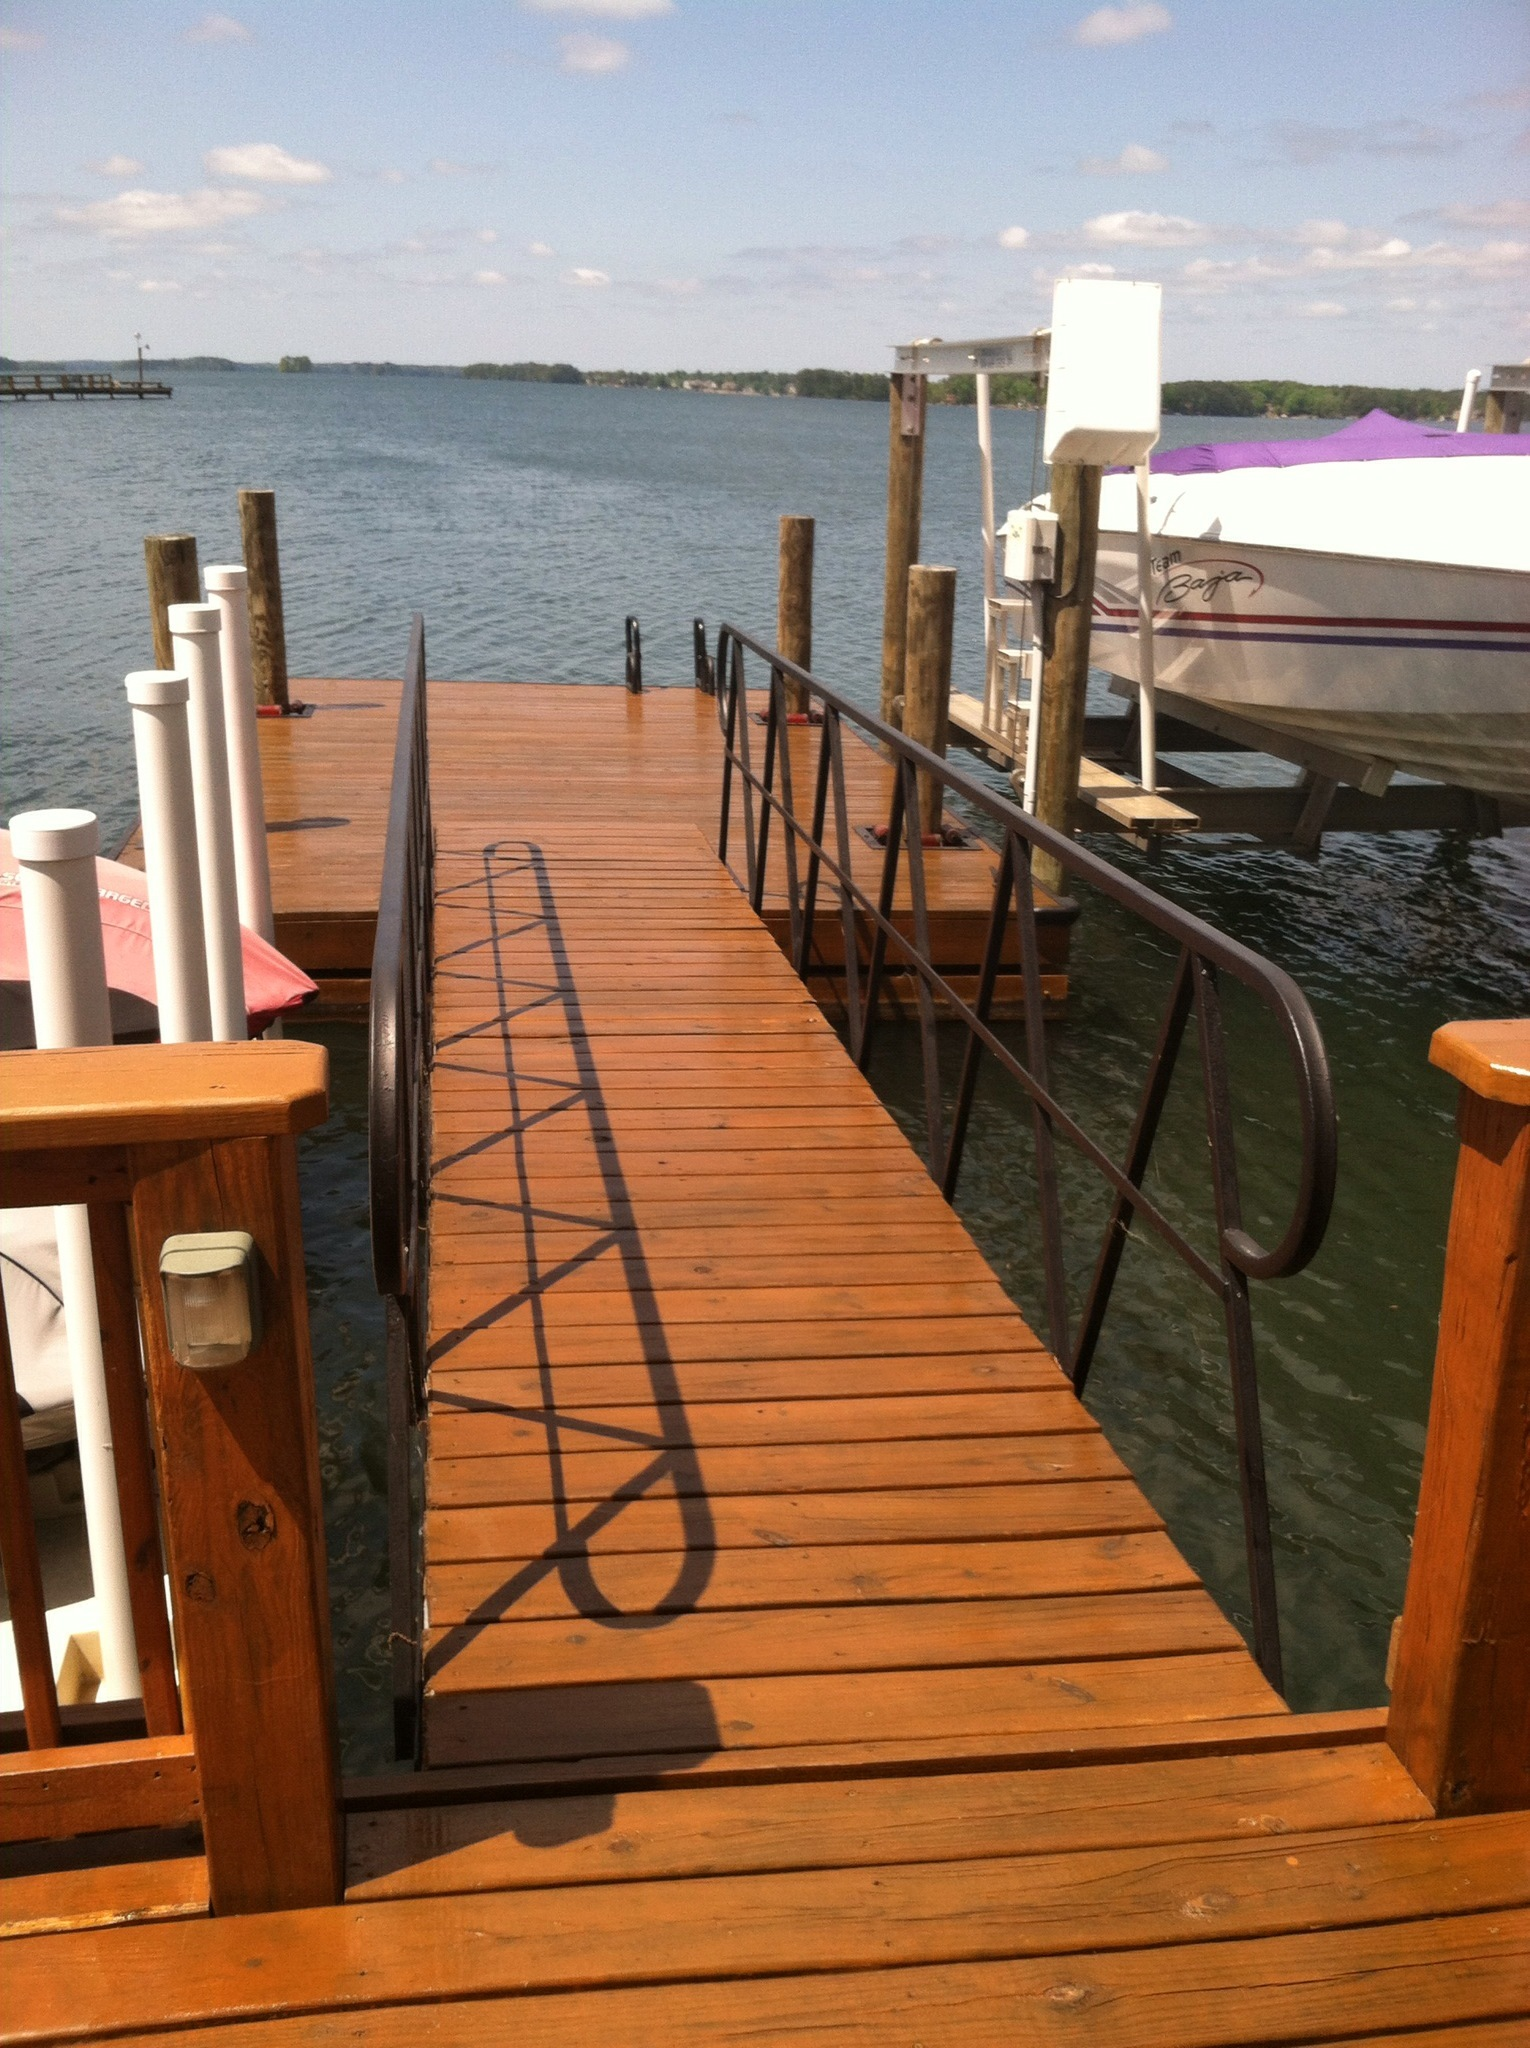 Dock pix - Jeff Blair -- 2013-04-23.jpg